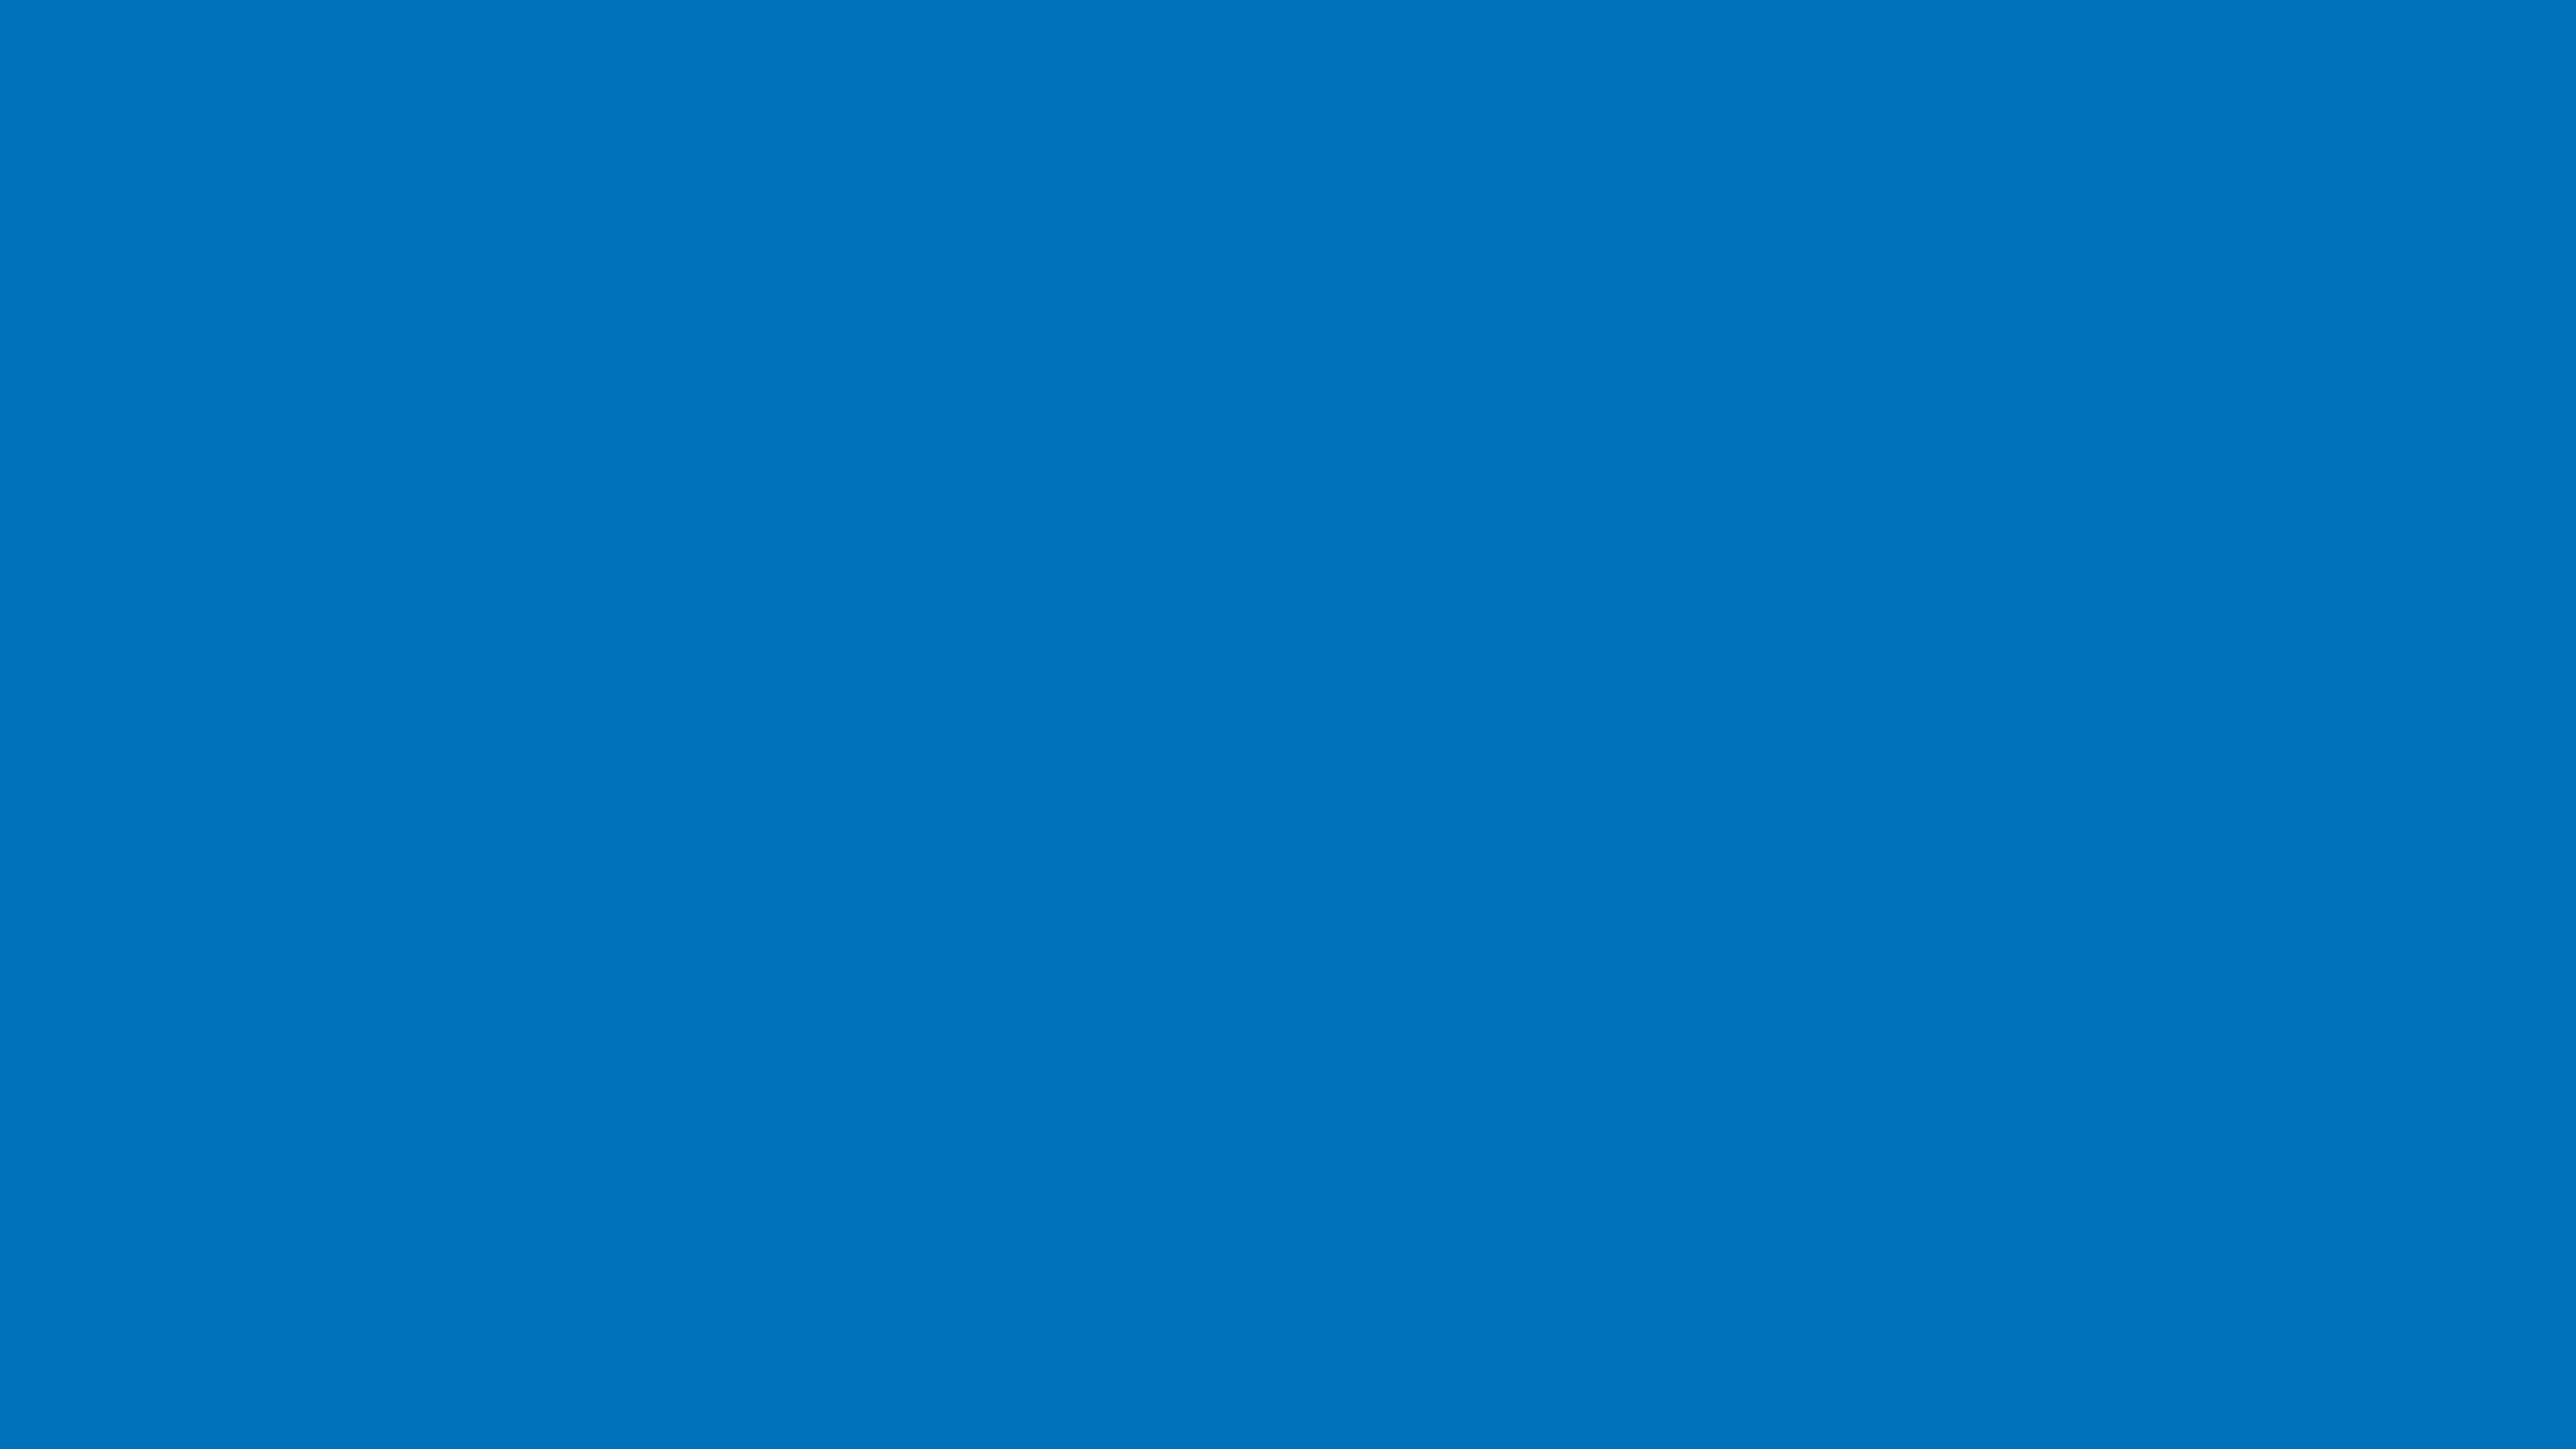 7680x4320 French Blue Solid Color Background